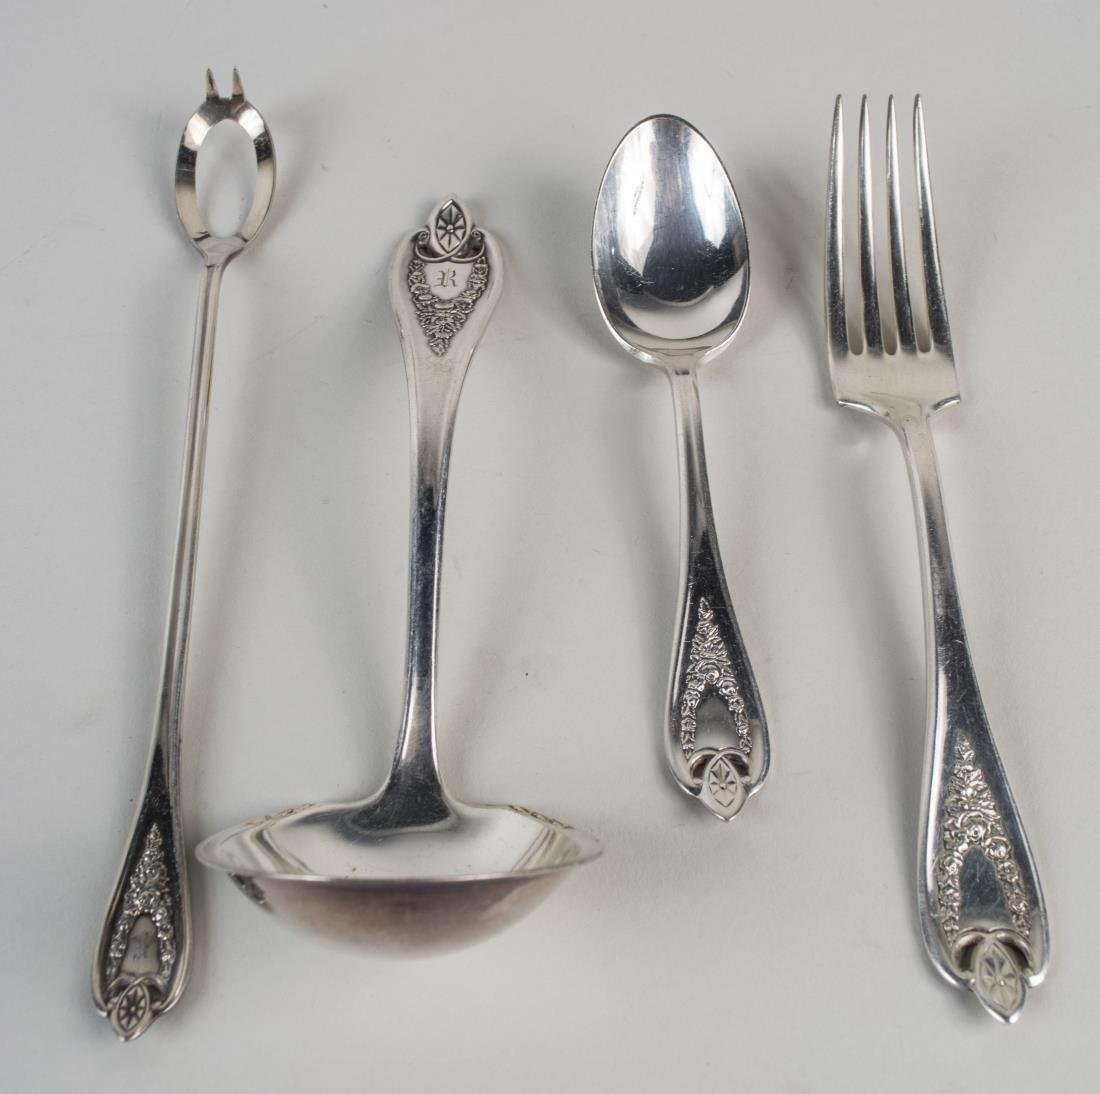 Rogers Bros. Silver Plated Flatware Service